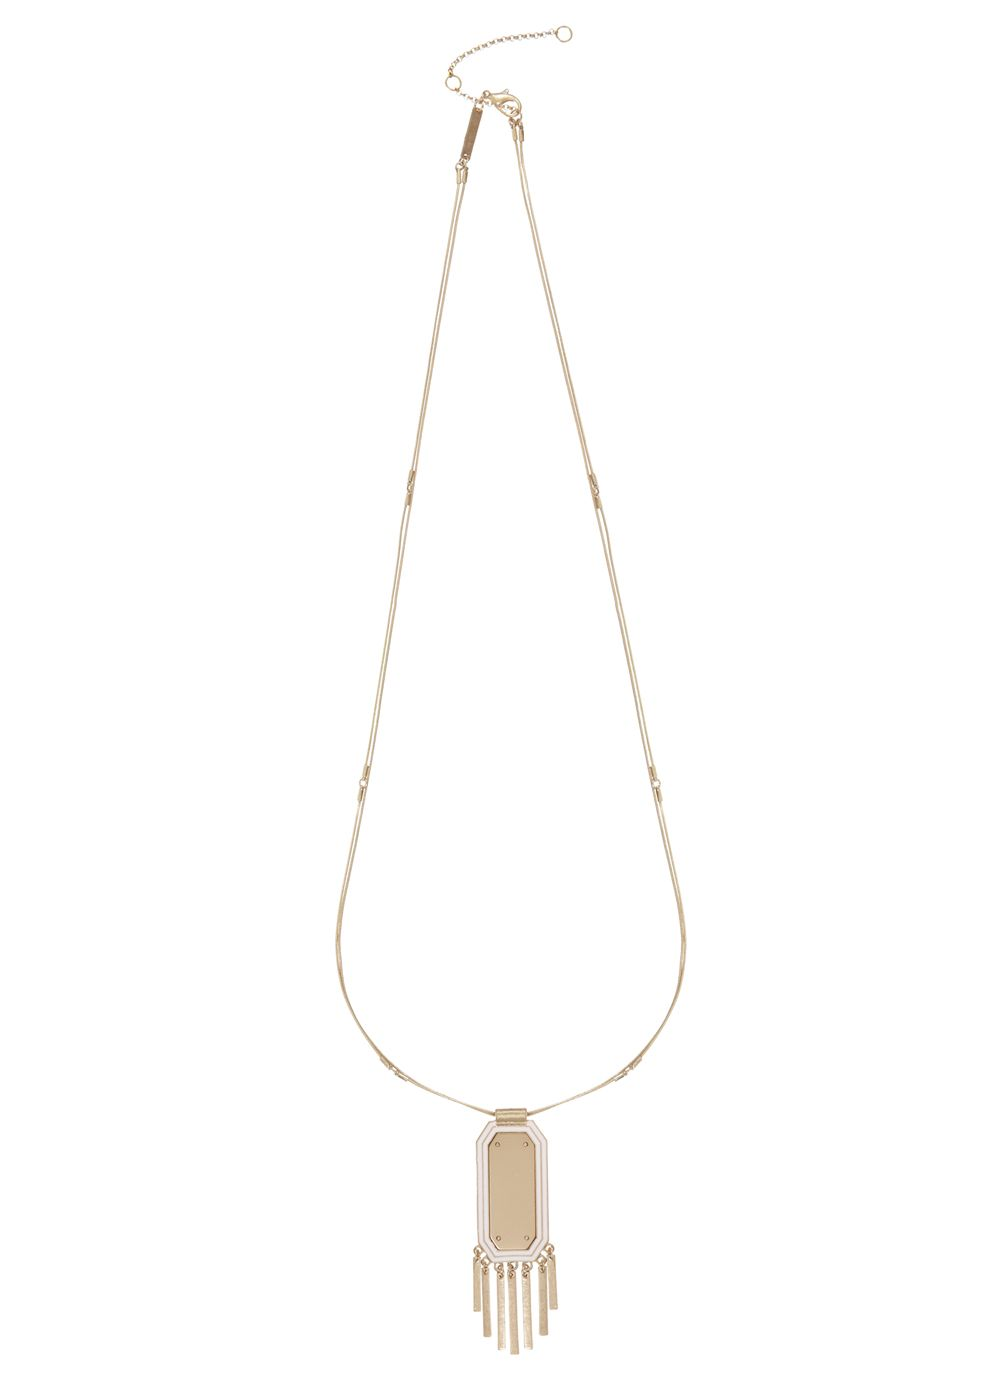 Enamel plate and metal fringe necklace